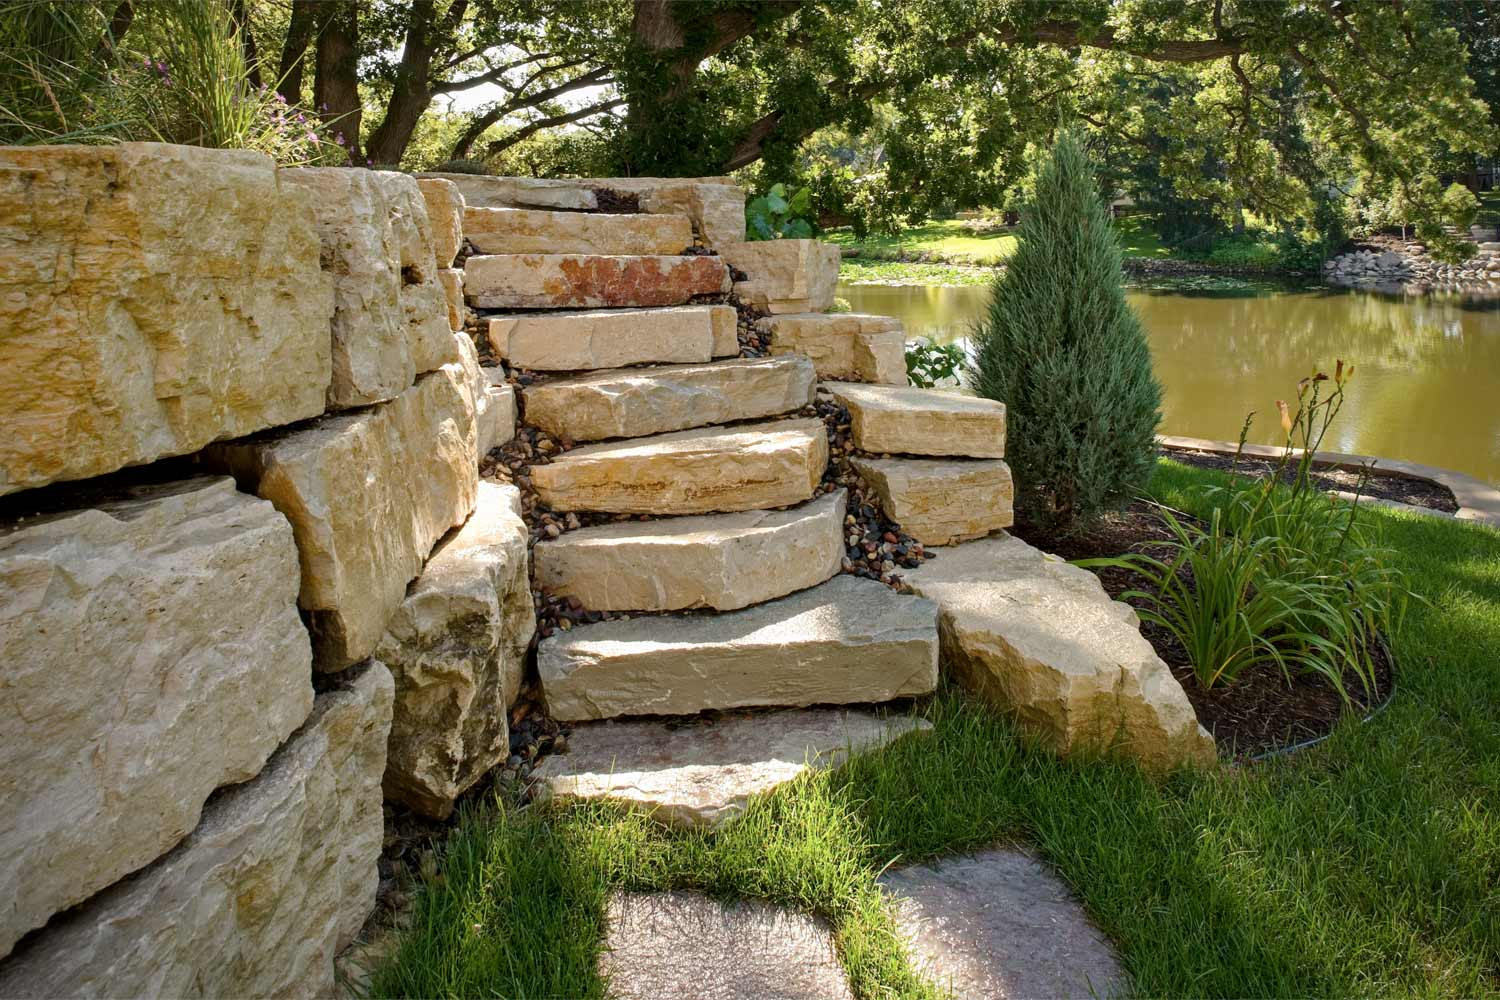 Stacked boulder retaining wall with stone staircase.